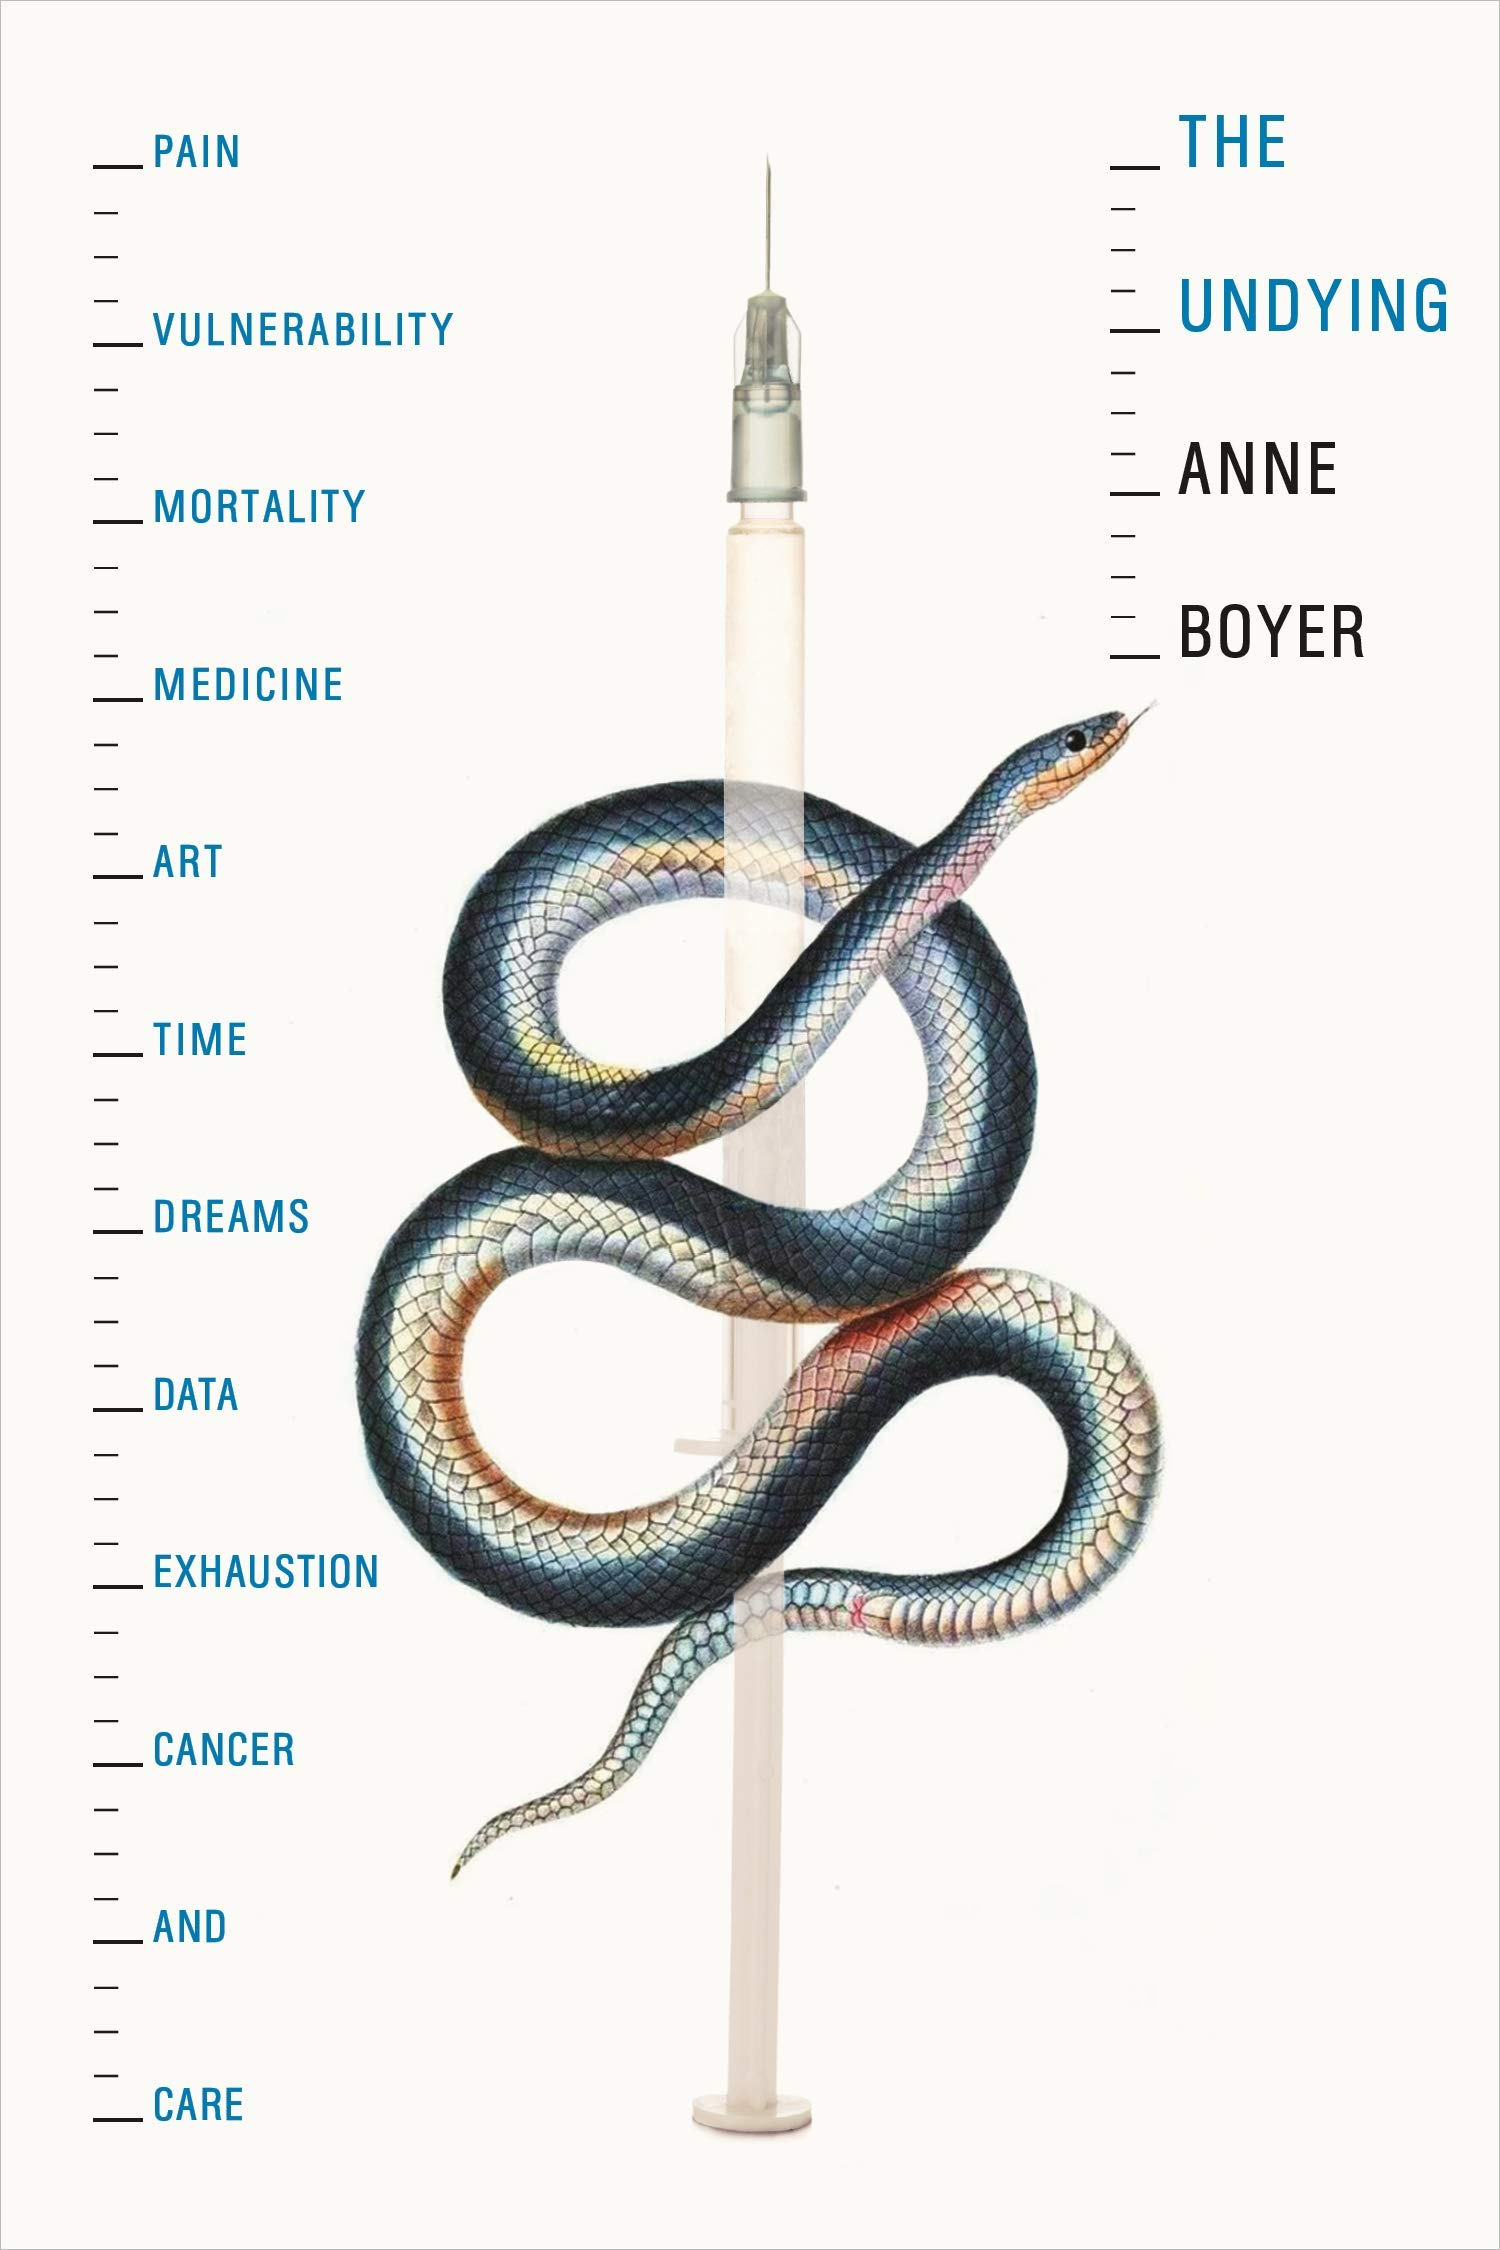 Cover of The Undying: Pain, vulnerability, mortality, medicine, art, time, dreams, data, exhaustion, cancer, and care by Anne Boyer